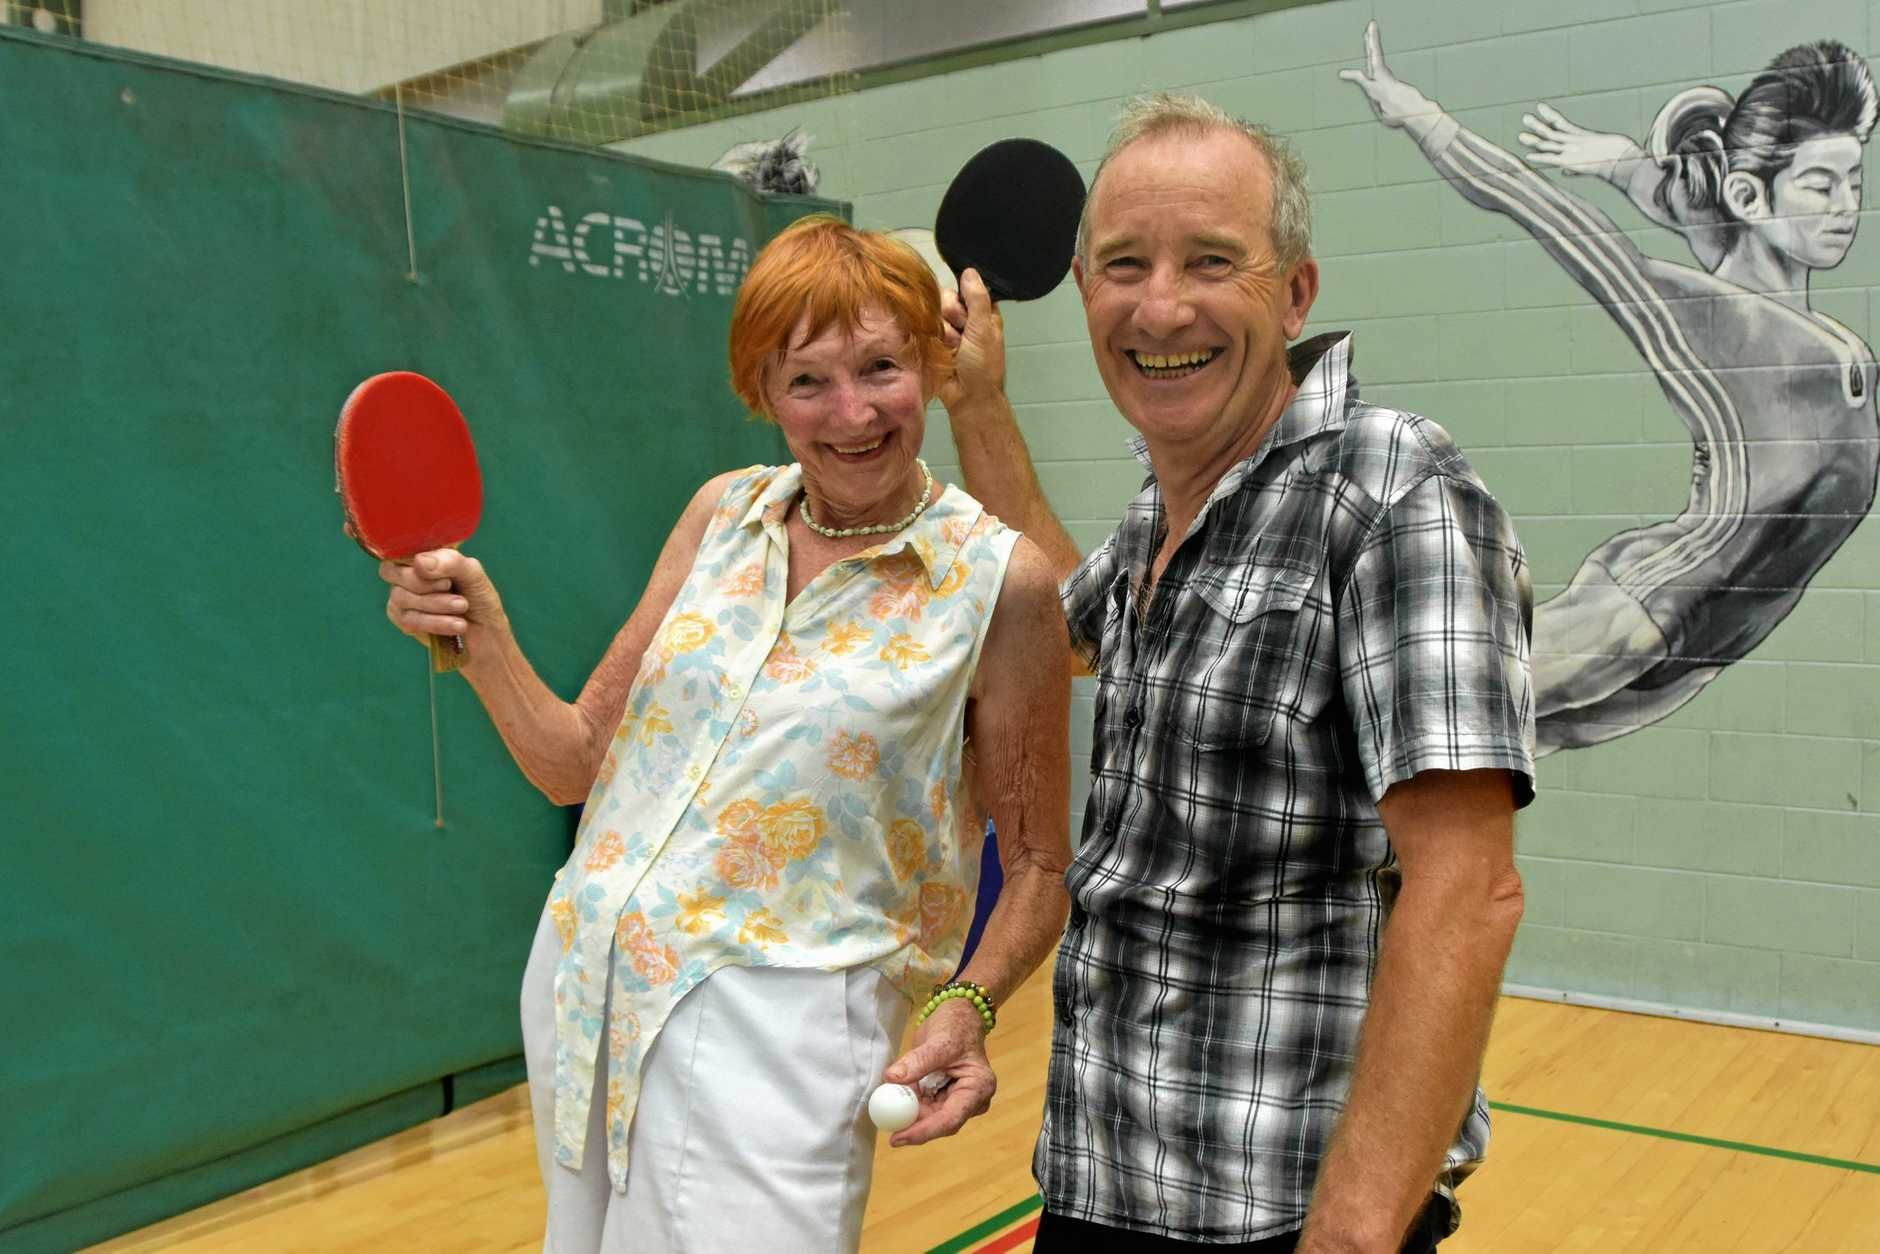 TOP SHOT: Elizabeth Cameron and Geoff Acton challenge to friendly table tennis competition at Noosa Leisure Centre